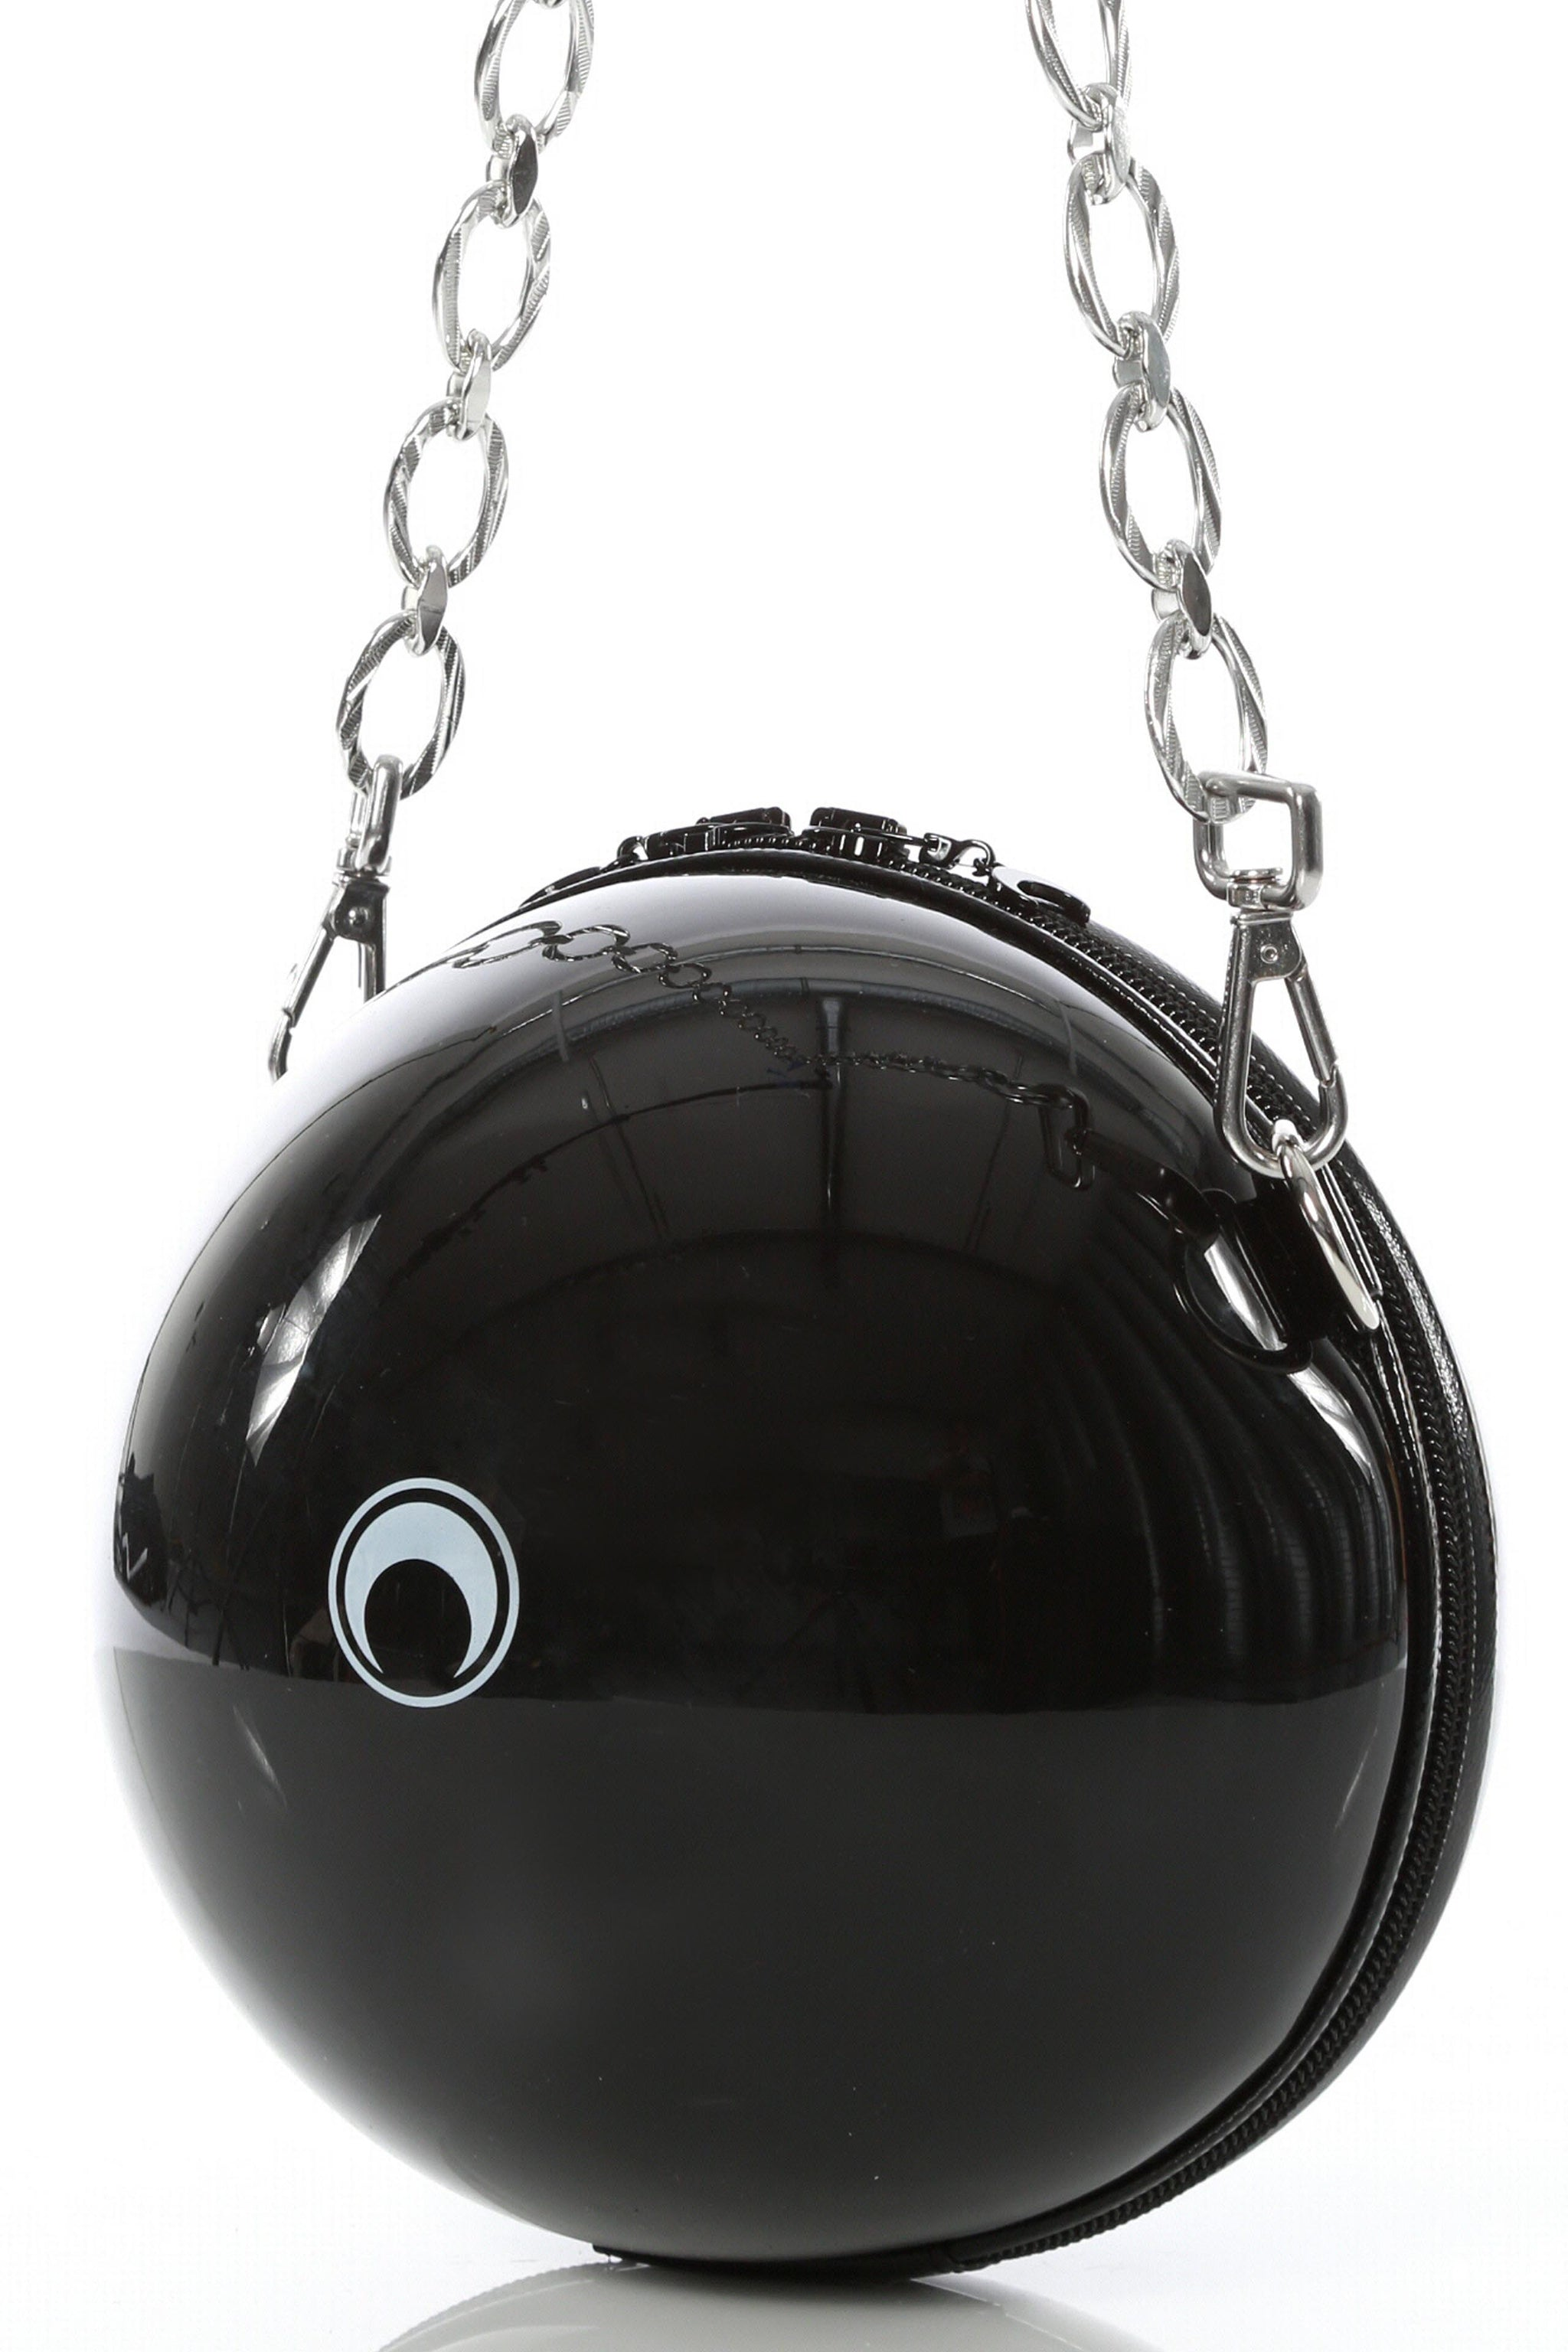 Big Ball Bag Black / Silver